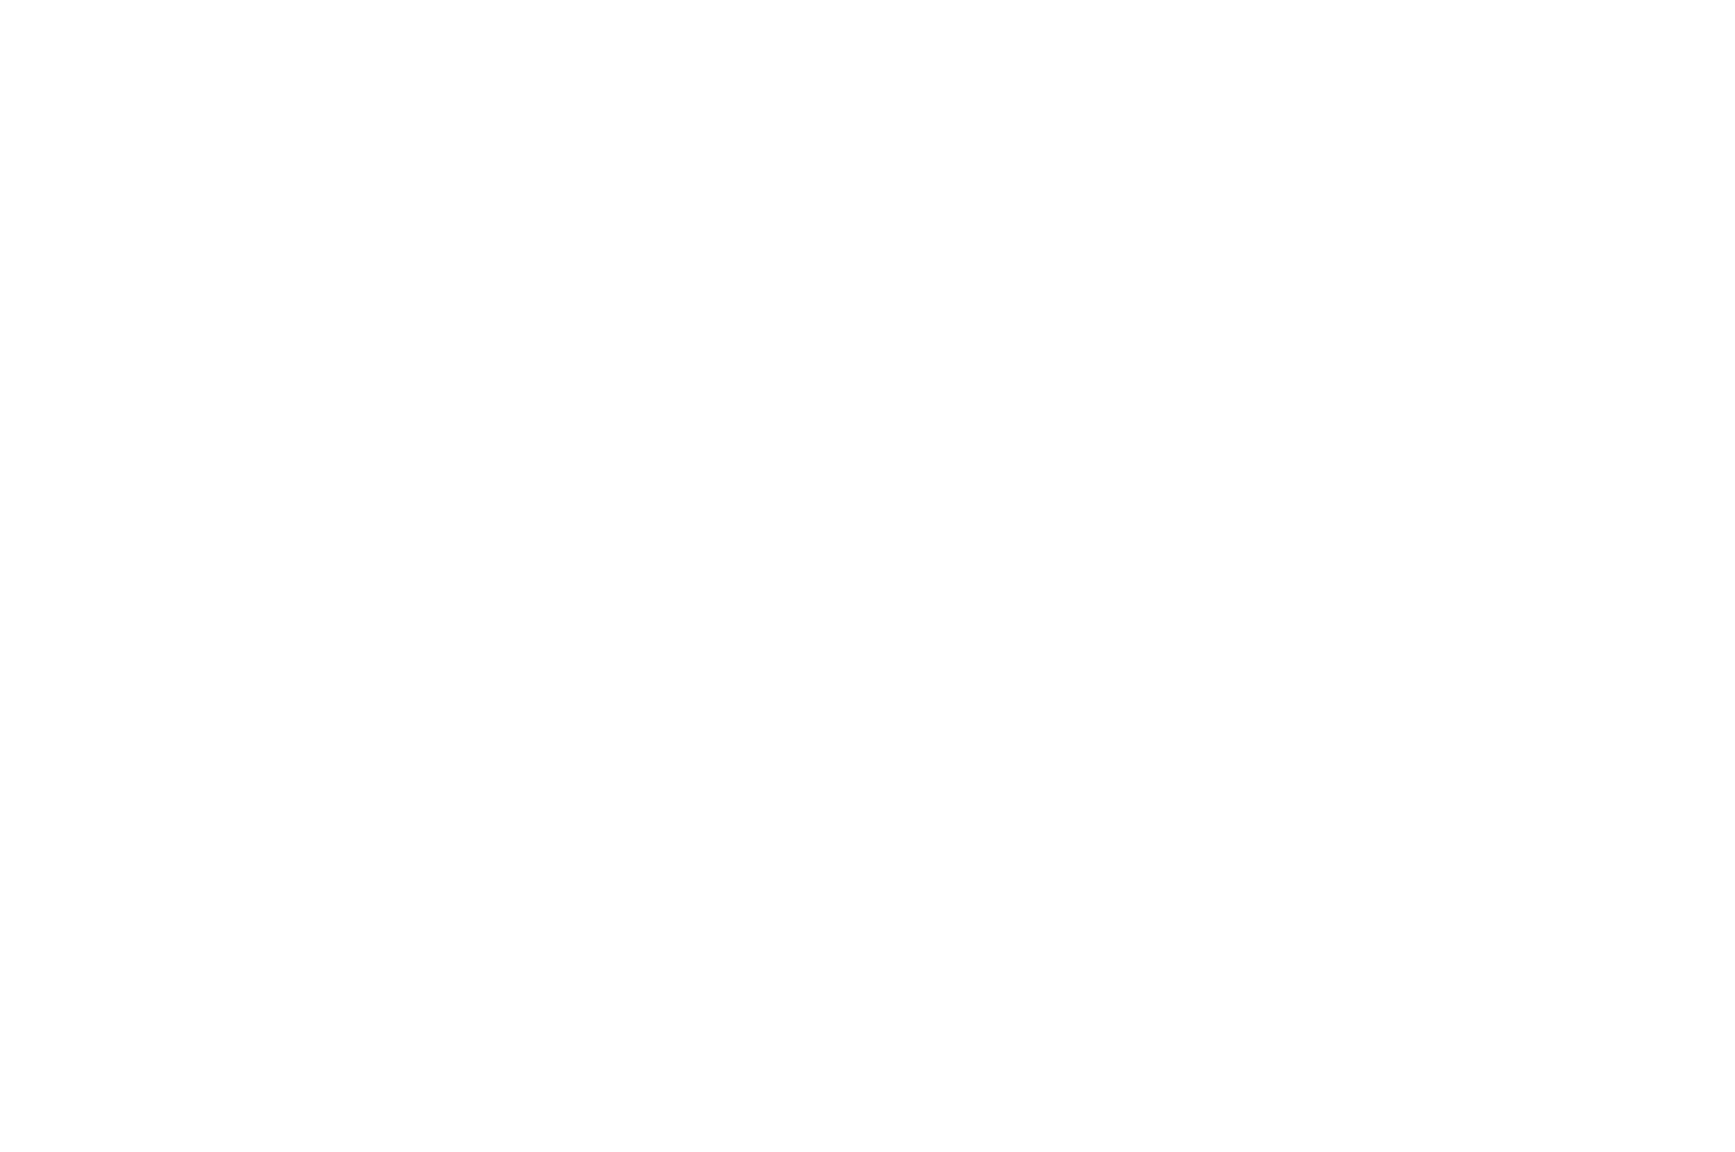 HONORABLE MENTION - Independent Shorts Awards - 2020